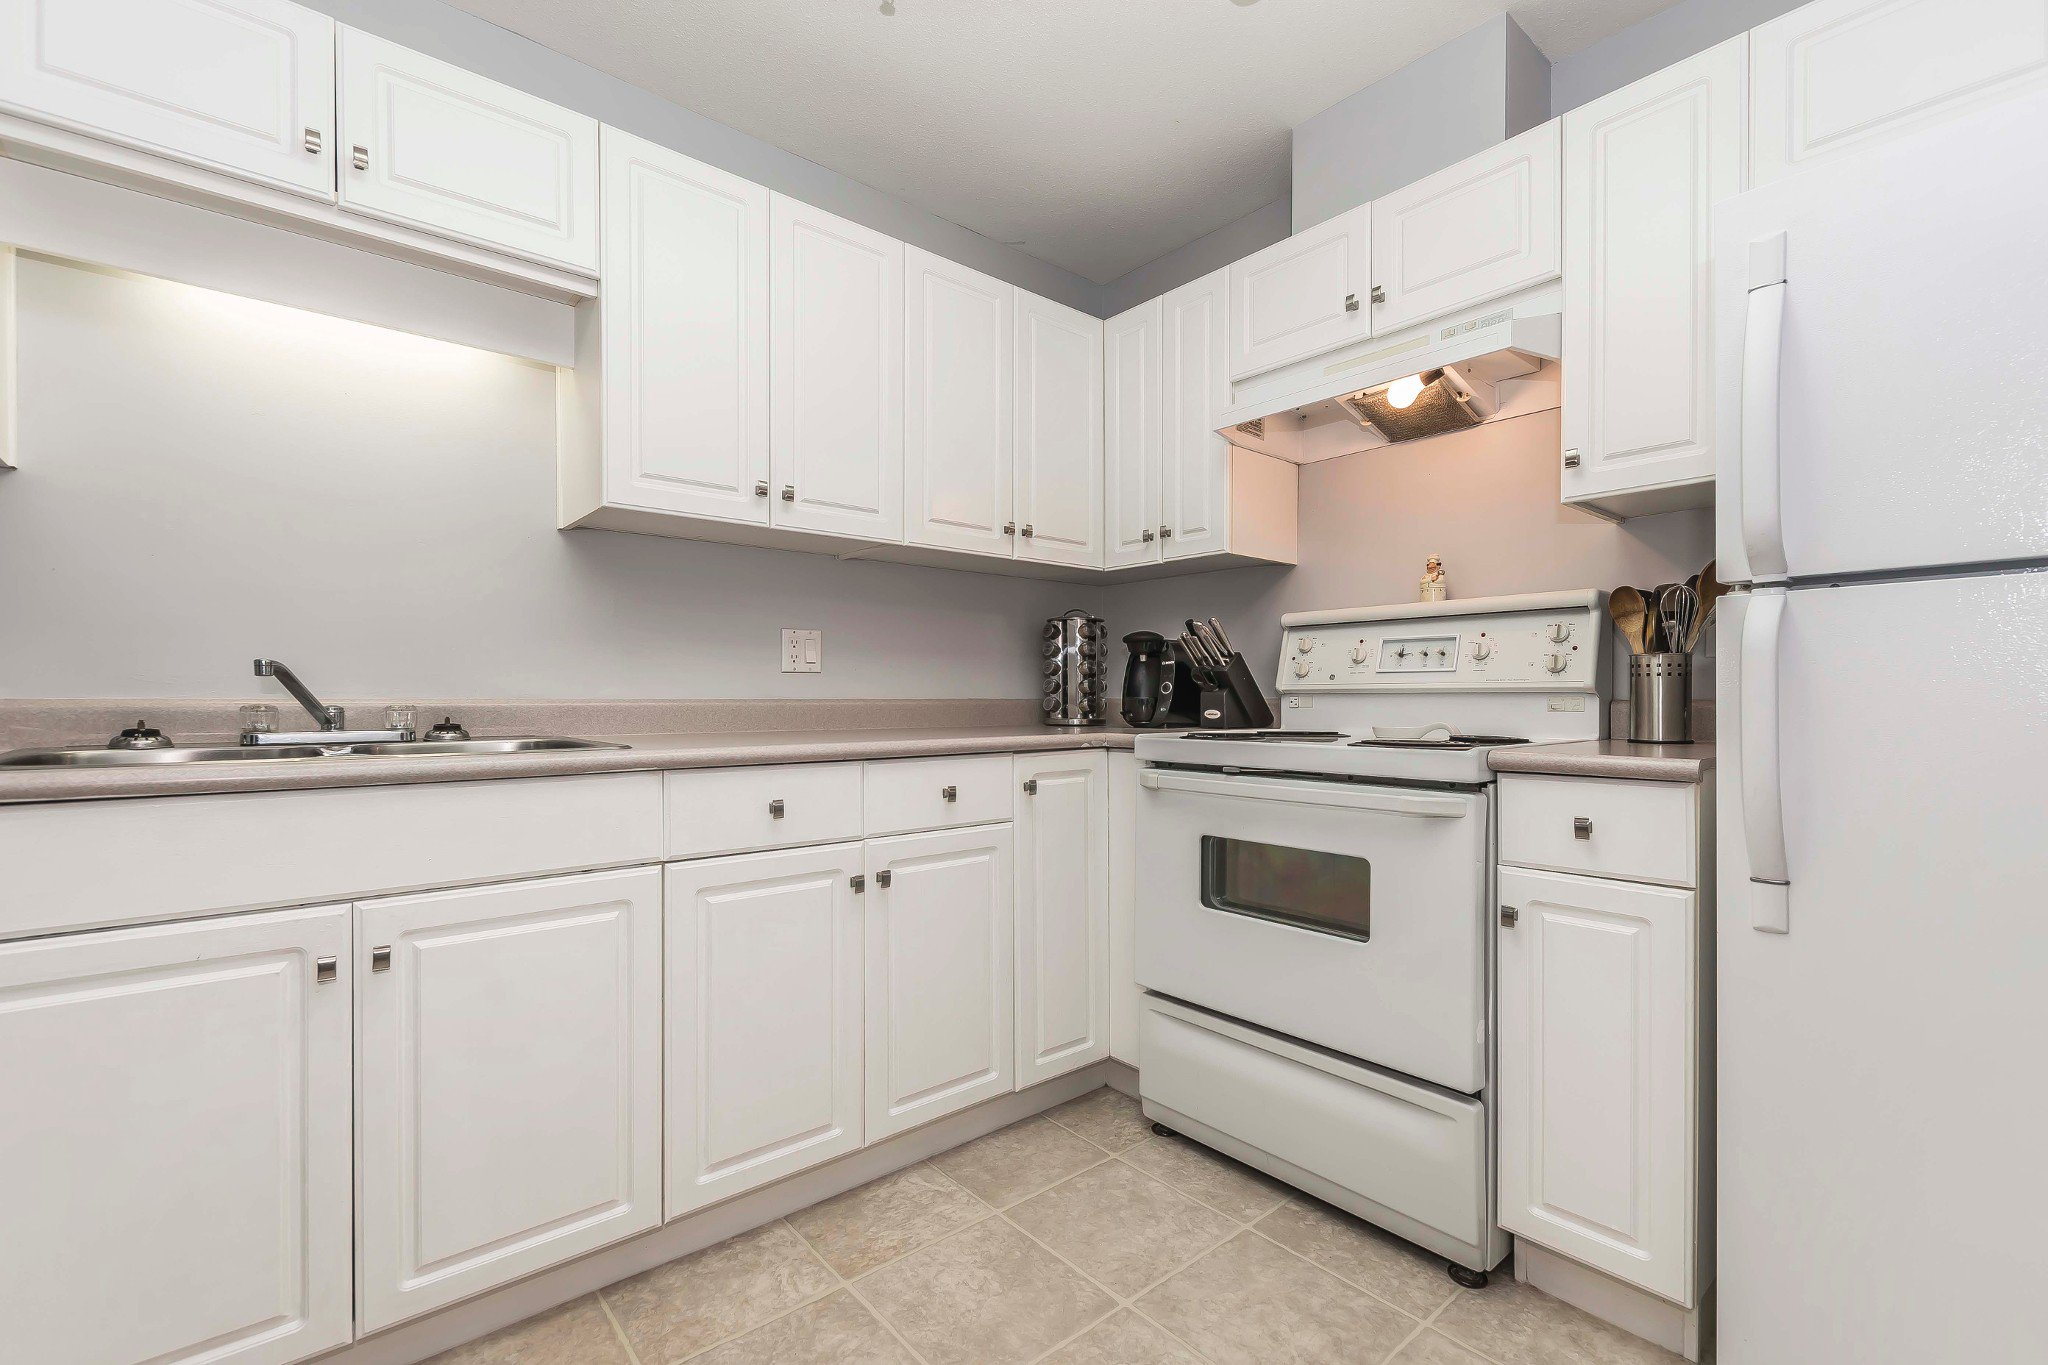 Photo 11: Photos: 210 46693 Yale Road in Chilliwack: Condo for sale : MLS®# r2231167